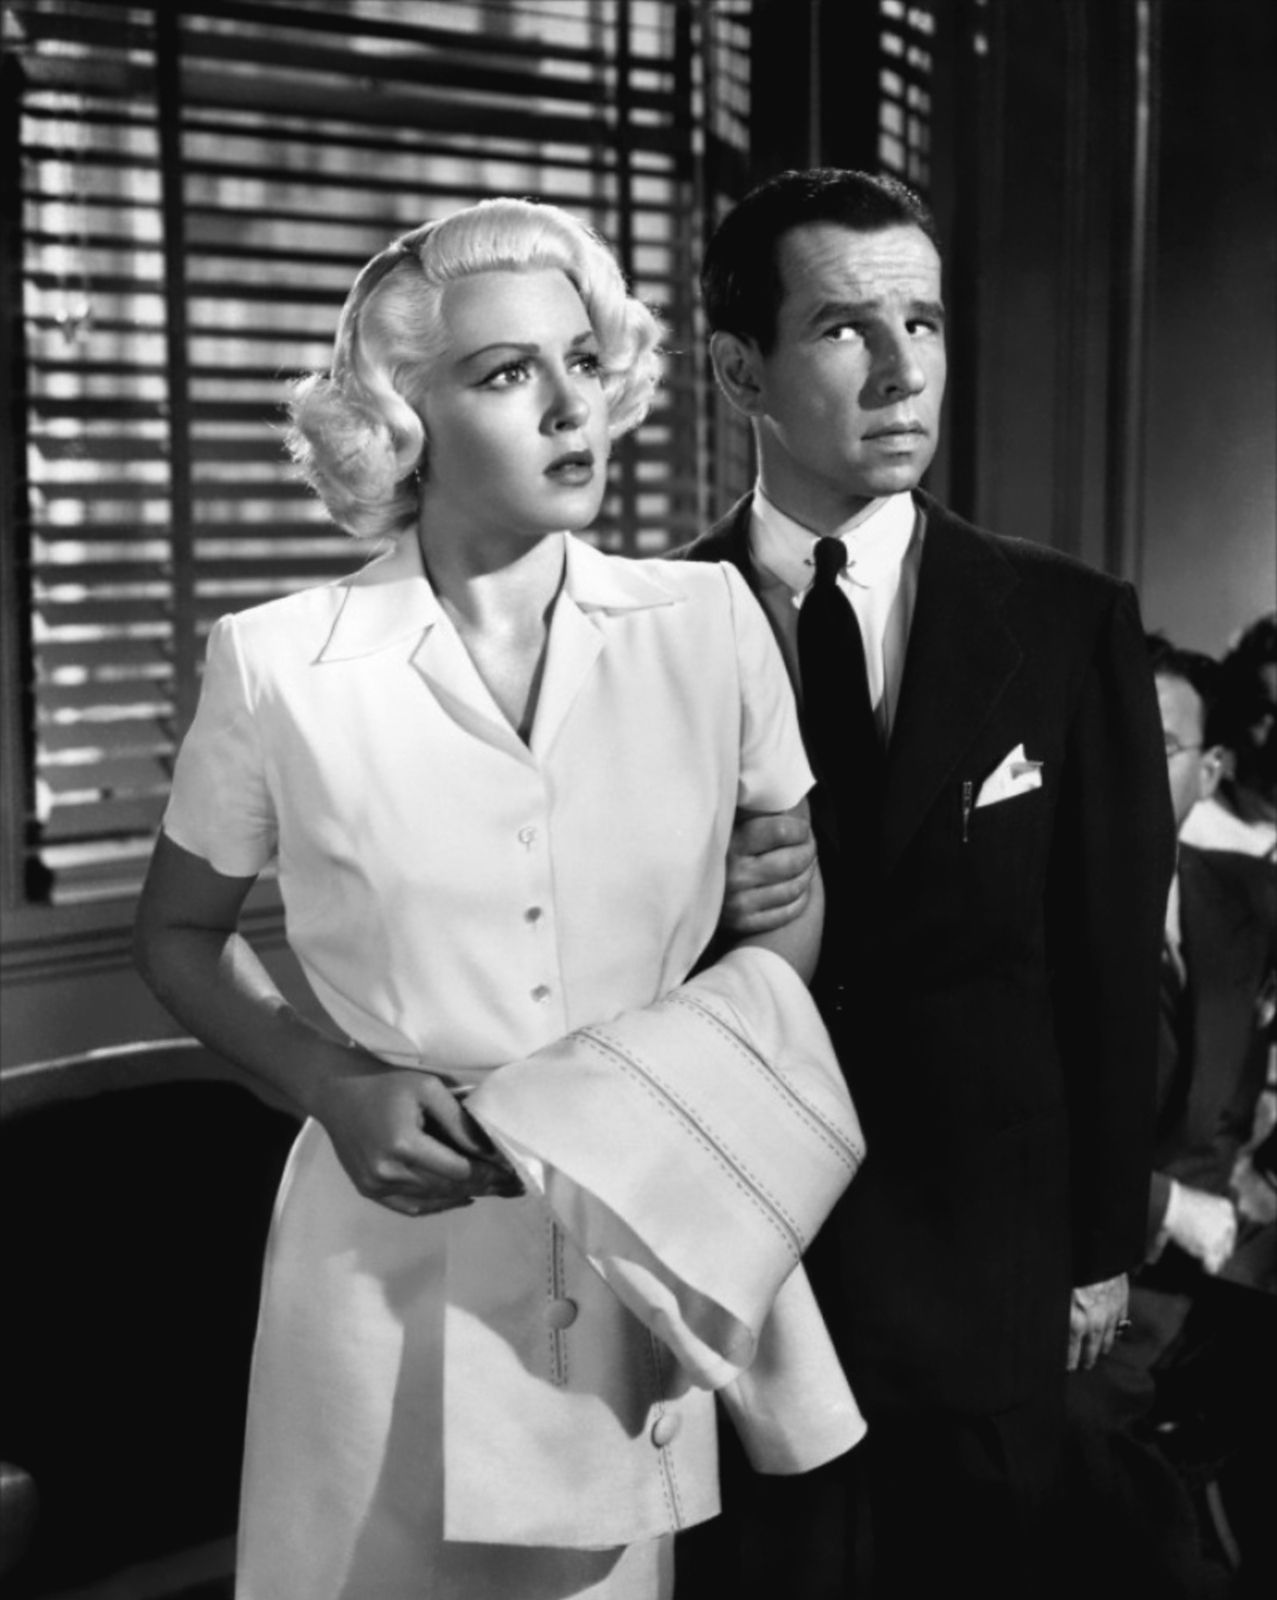 Discussion on this topic: Finty Williams (born 1972), hume-cronyn/